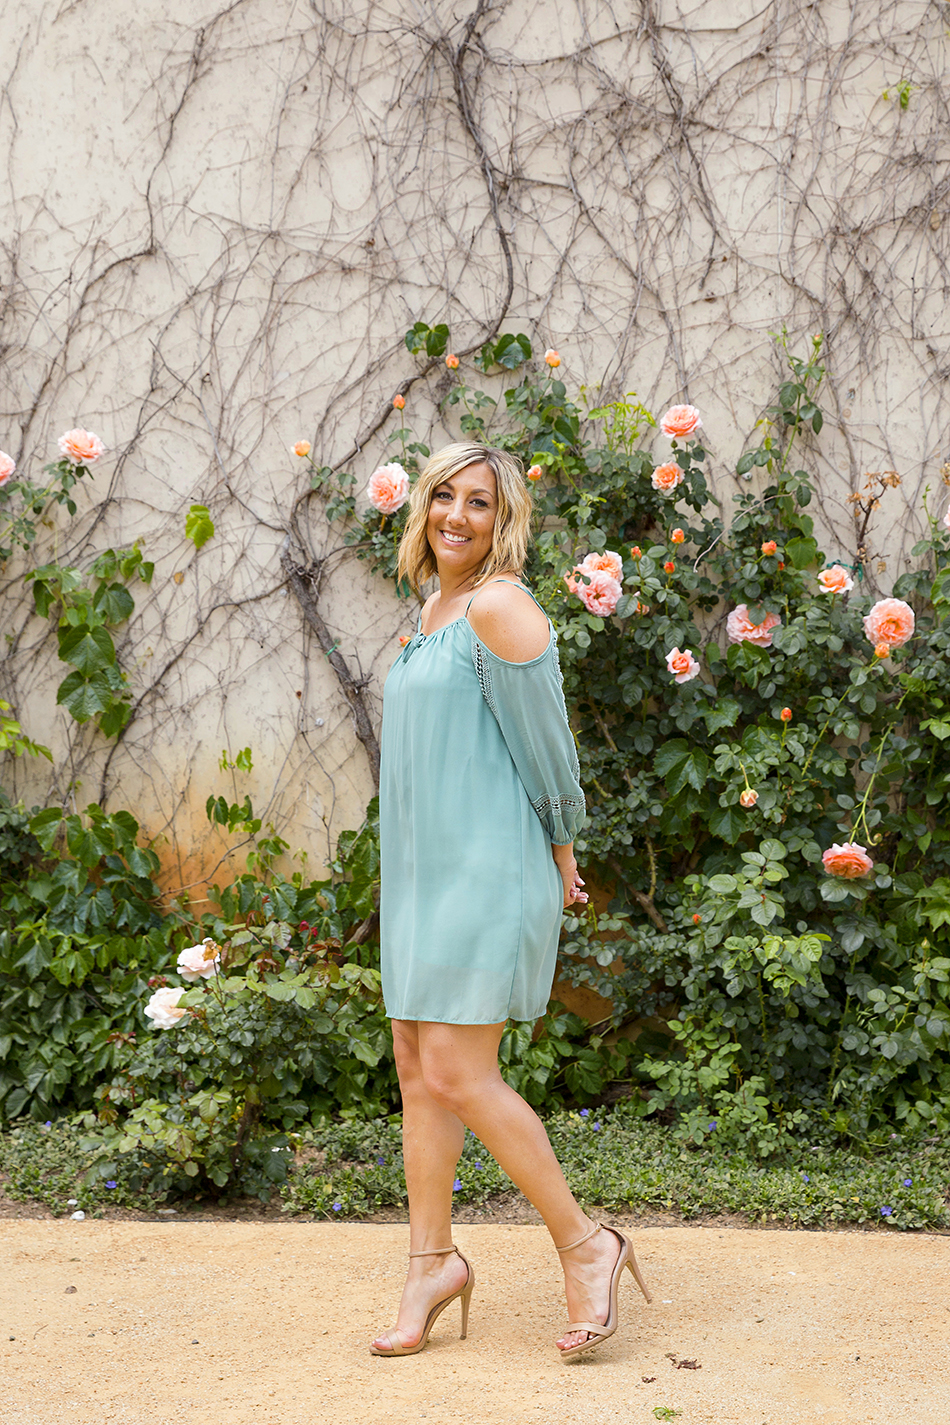 Erin Russo, Creative Director & Certified Wedding Consultant and Event Planner